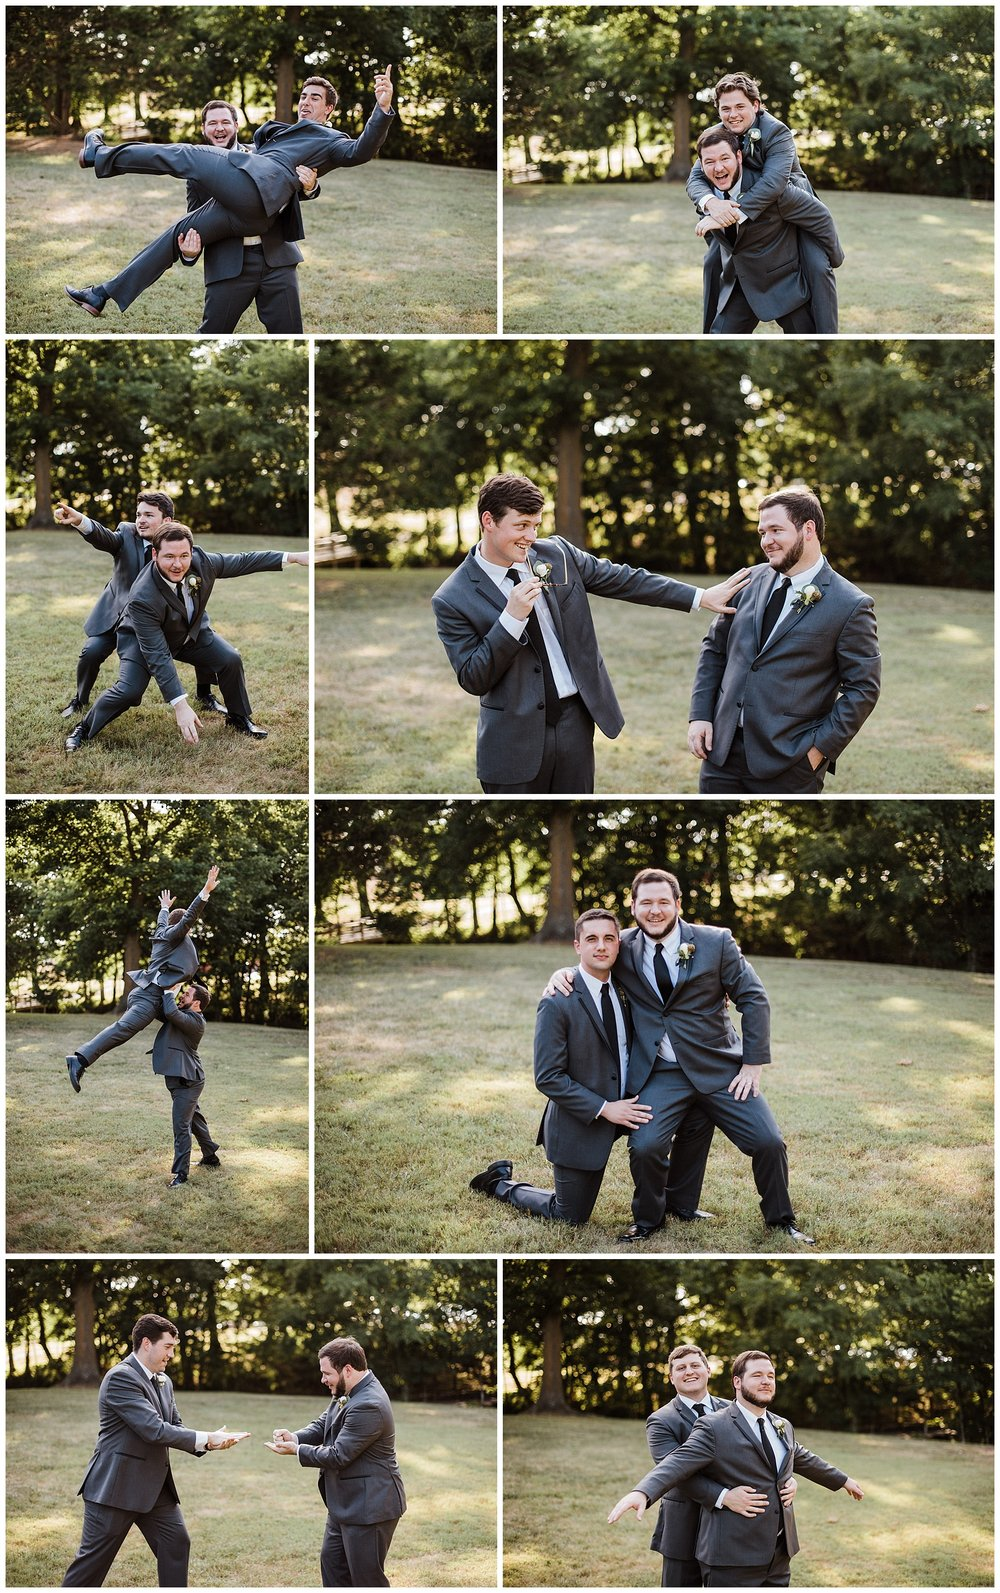 Tanner Burge Photo - the best Groomsmen personality pictures ever